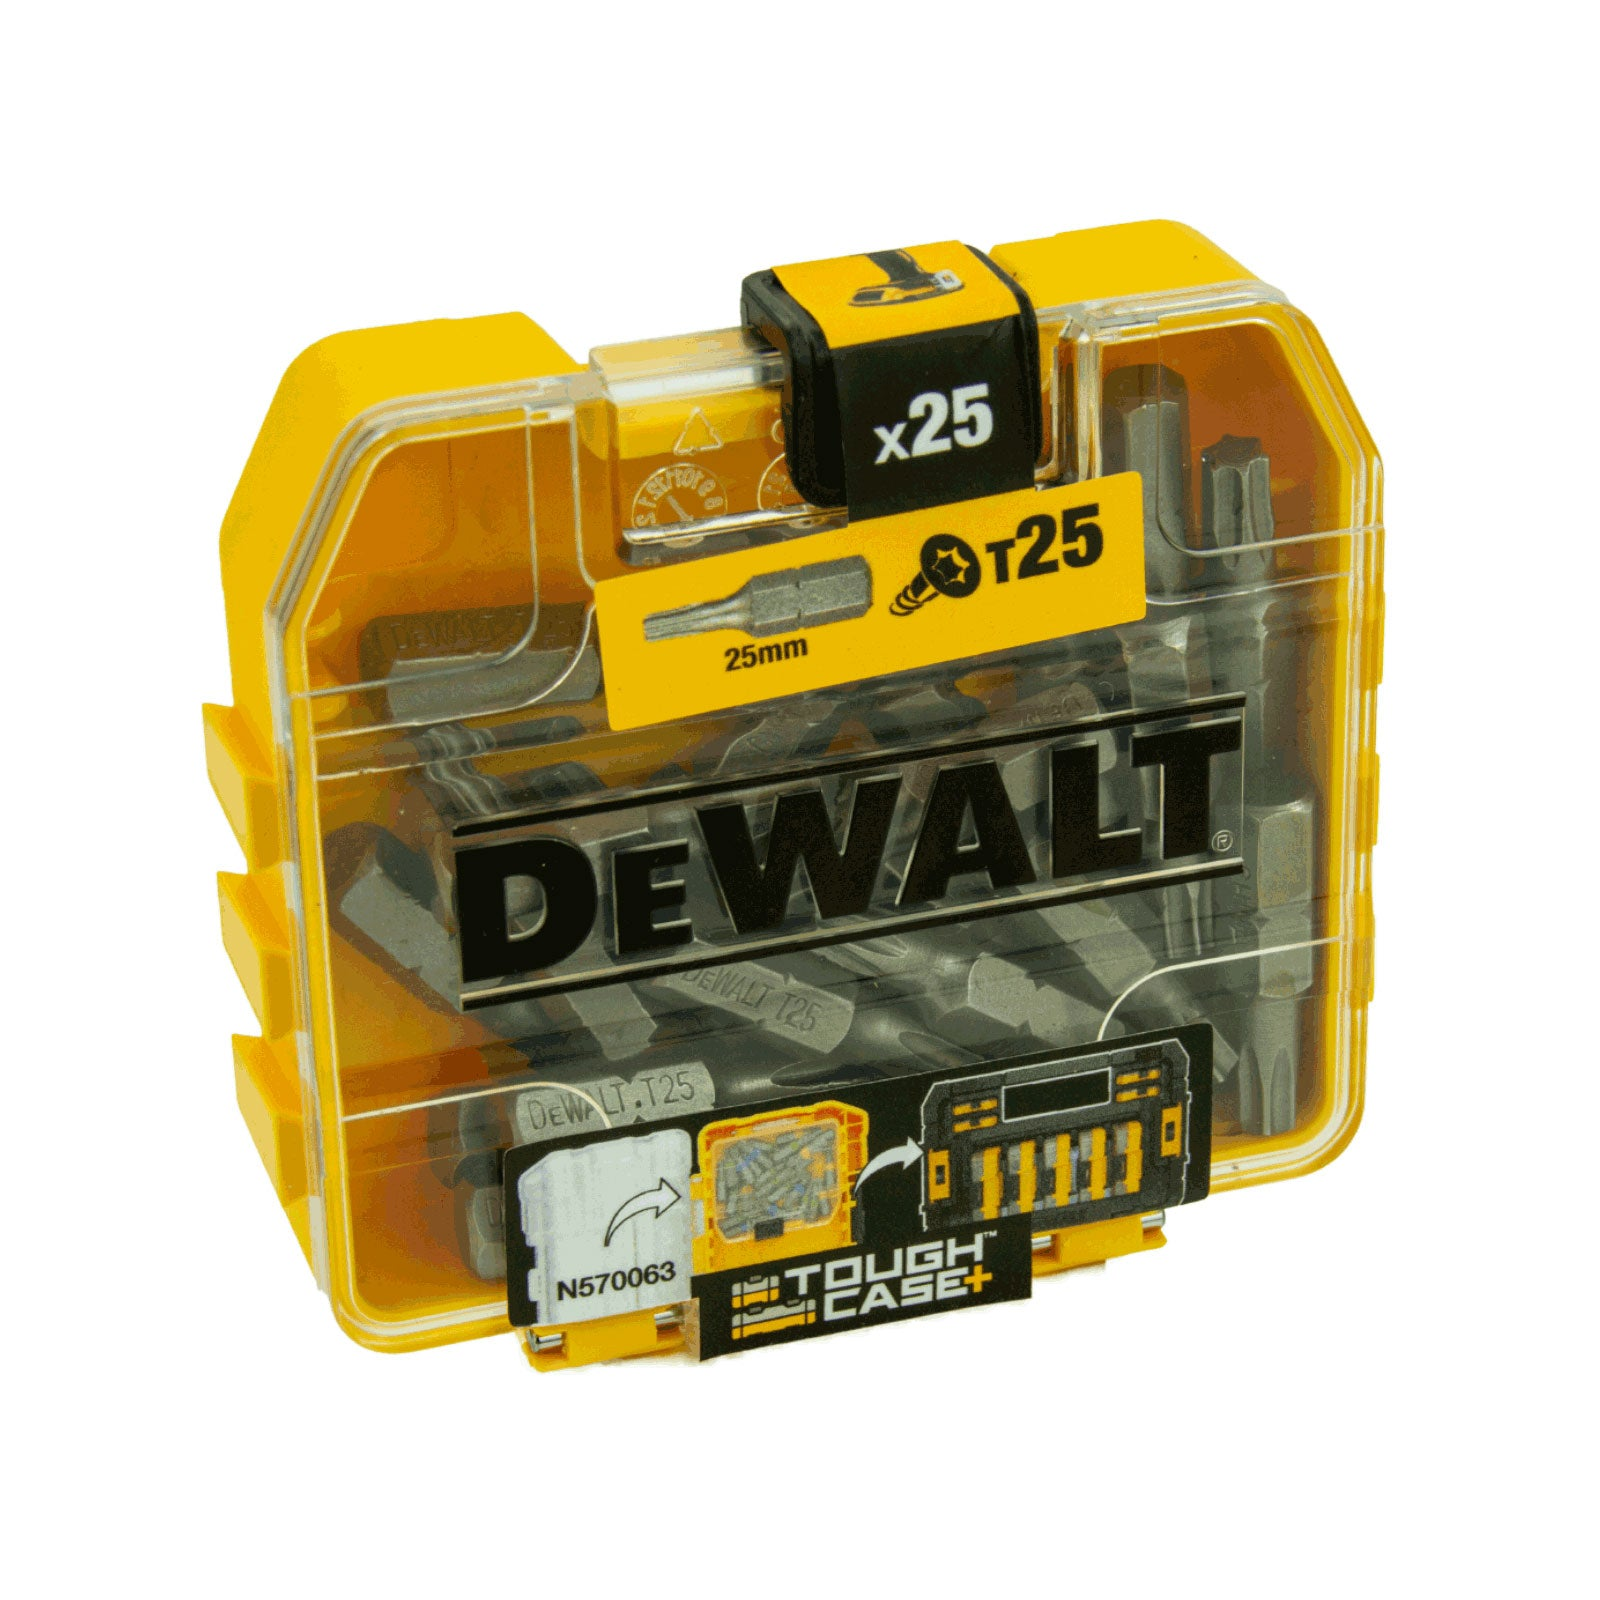 DeWalt 2 x Bit-Box DT7962-QZ, 50 x T25 Bit in Tough Box